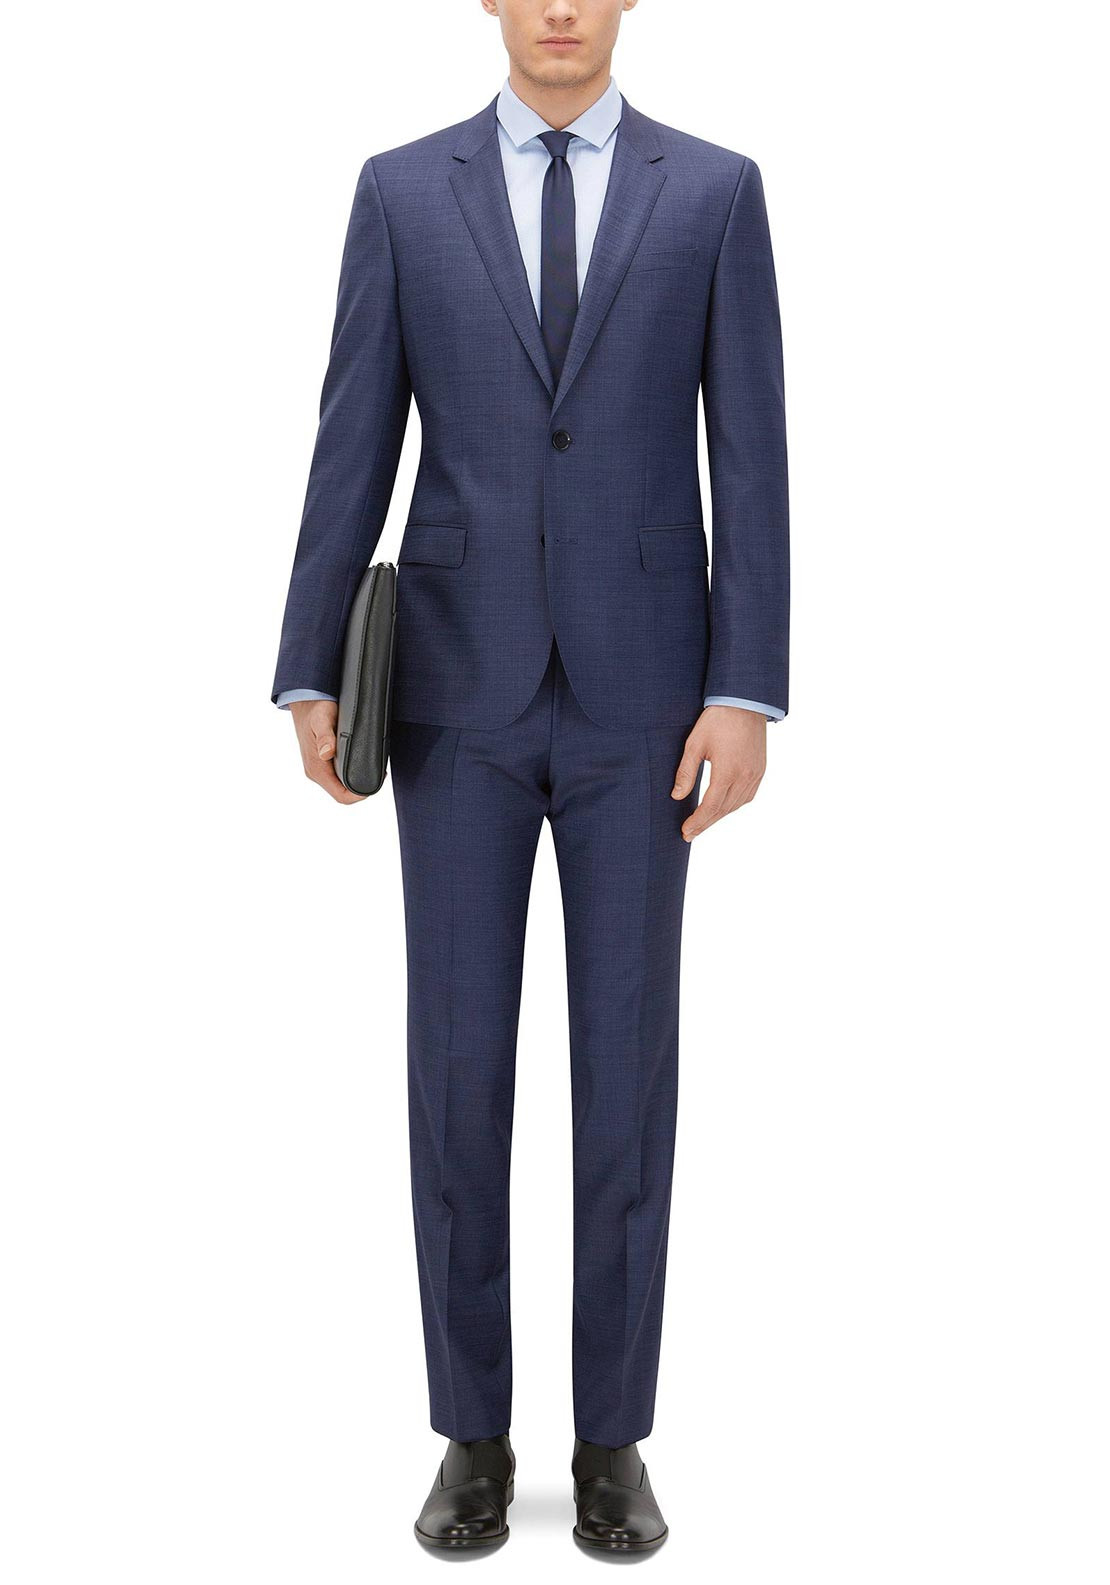 25195bc9a6 Hugo Boss Men's Huge Genius Fit 2-Piece Suit, Plain Navy. Be the first to  review this product